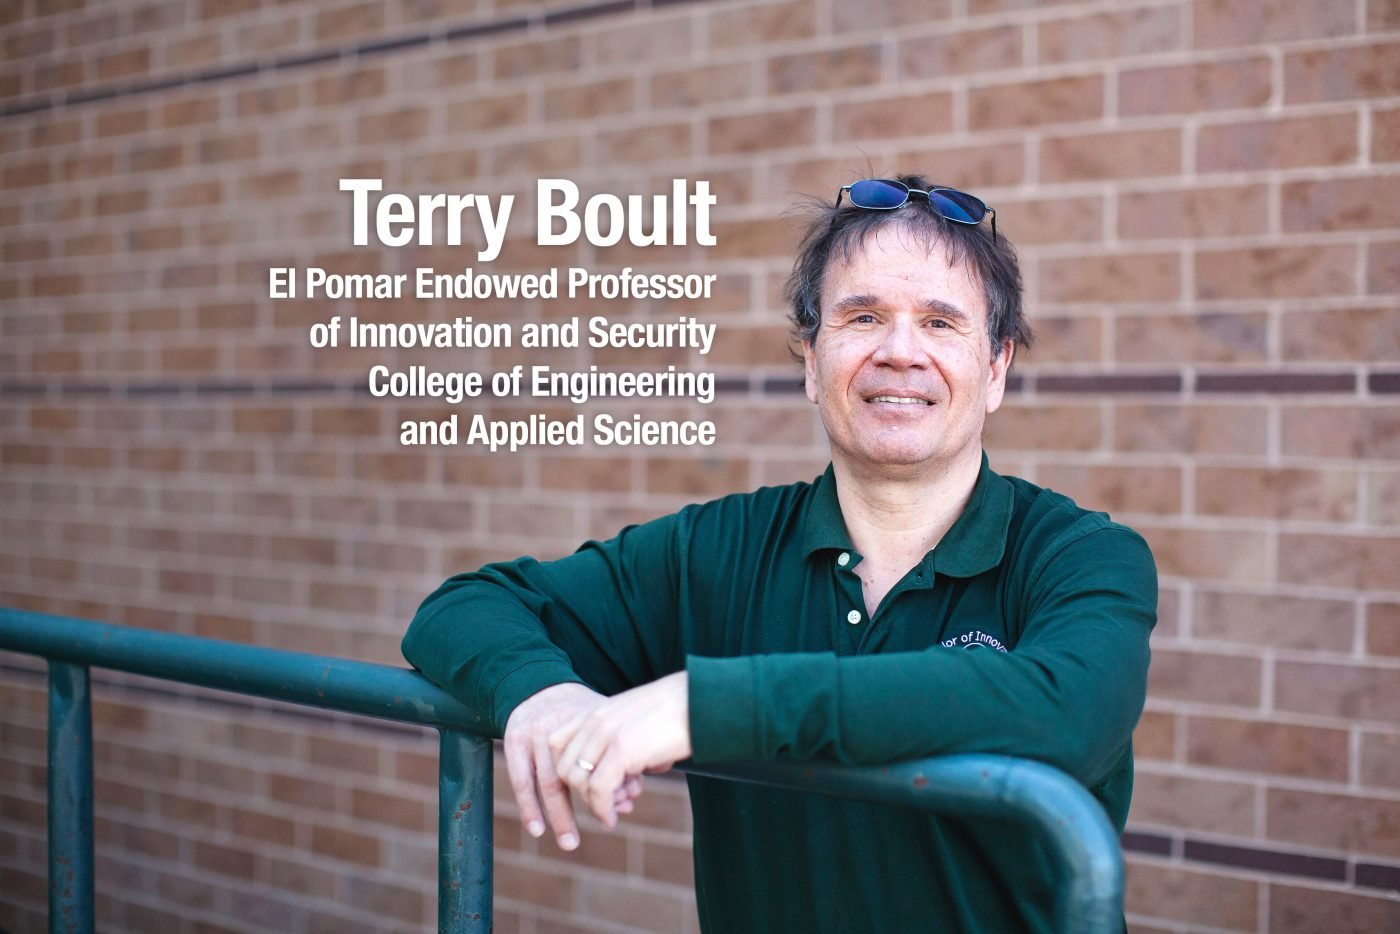 Terry Boult, El Pomar Endowed Professor of Innovation and Security, College of Engineering and Applied Science